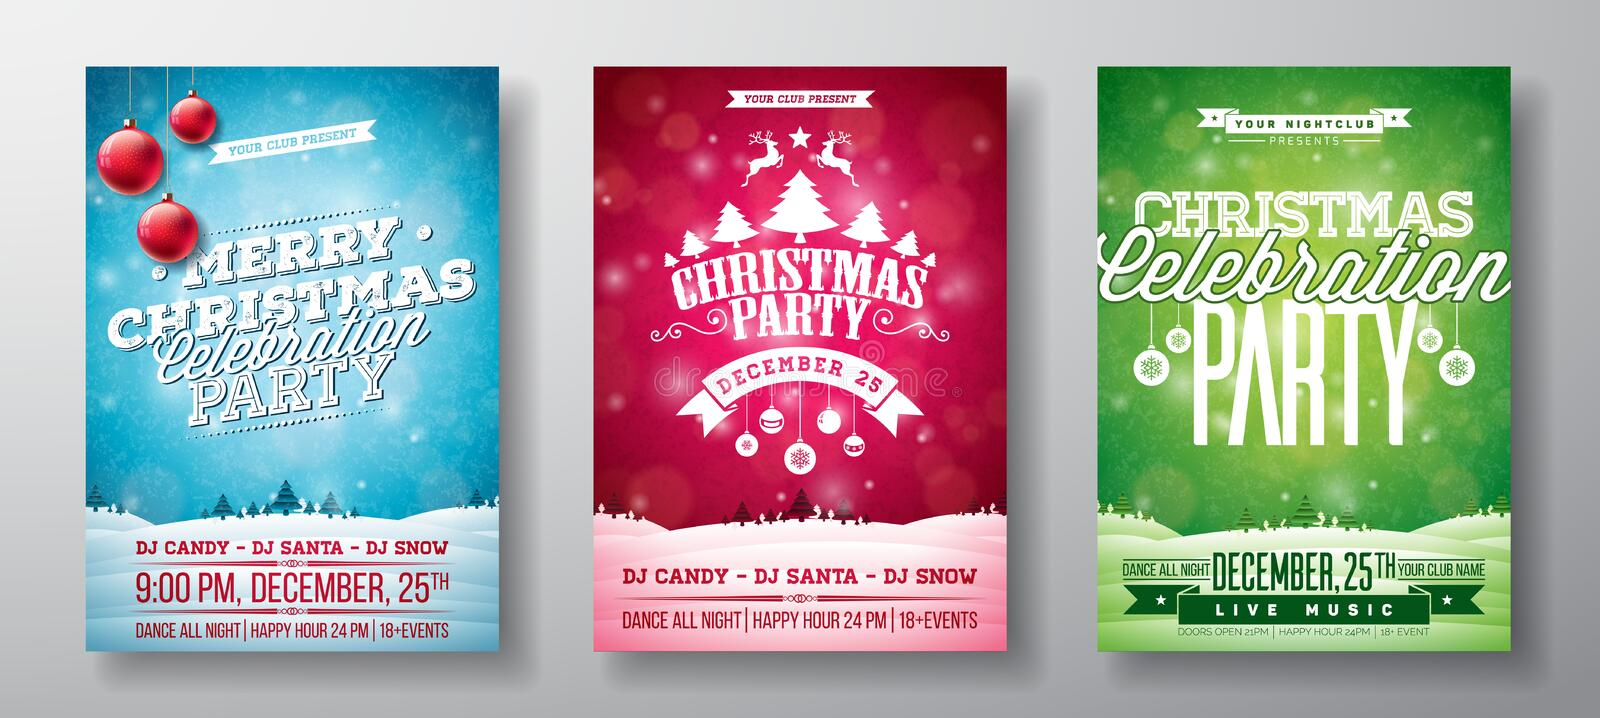 Vector Merry Christmas Party Flyer Illustration with Typography and Holiday Elements on Vintage background. Winter stock illustration